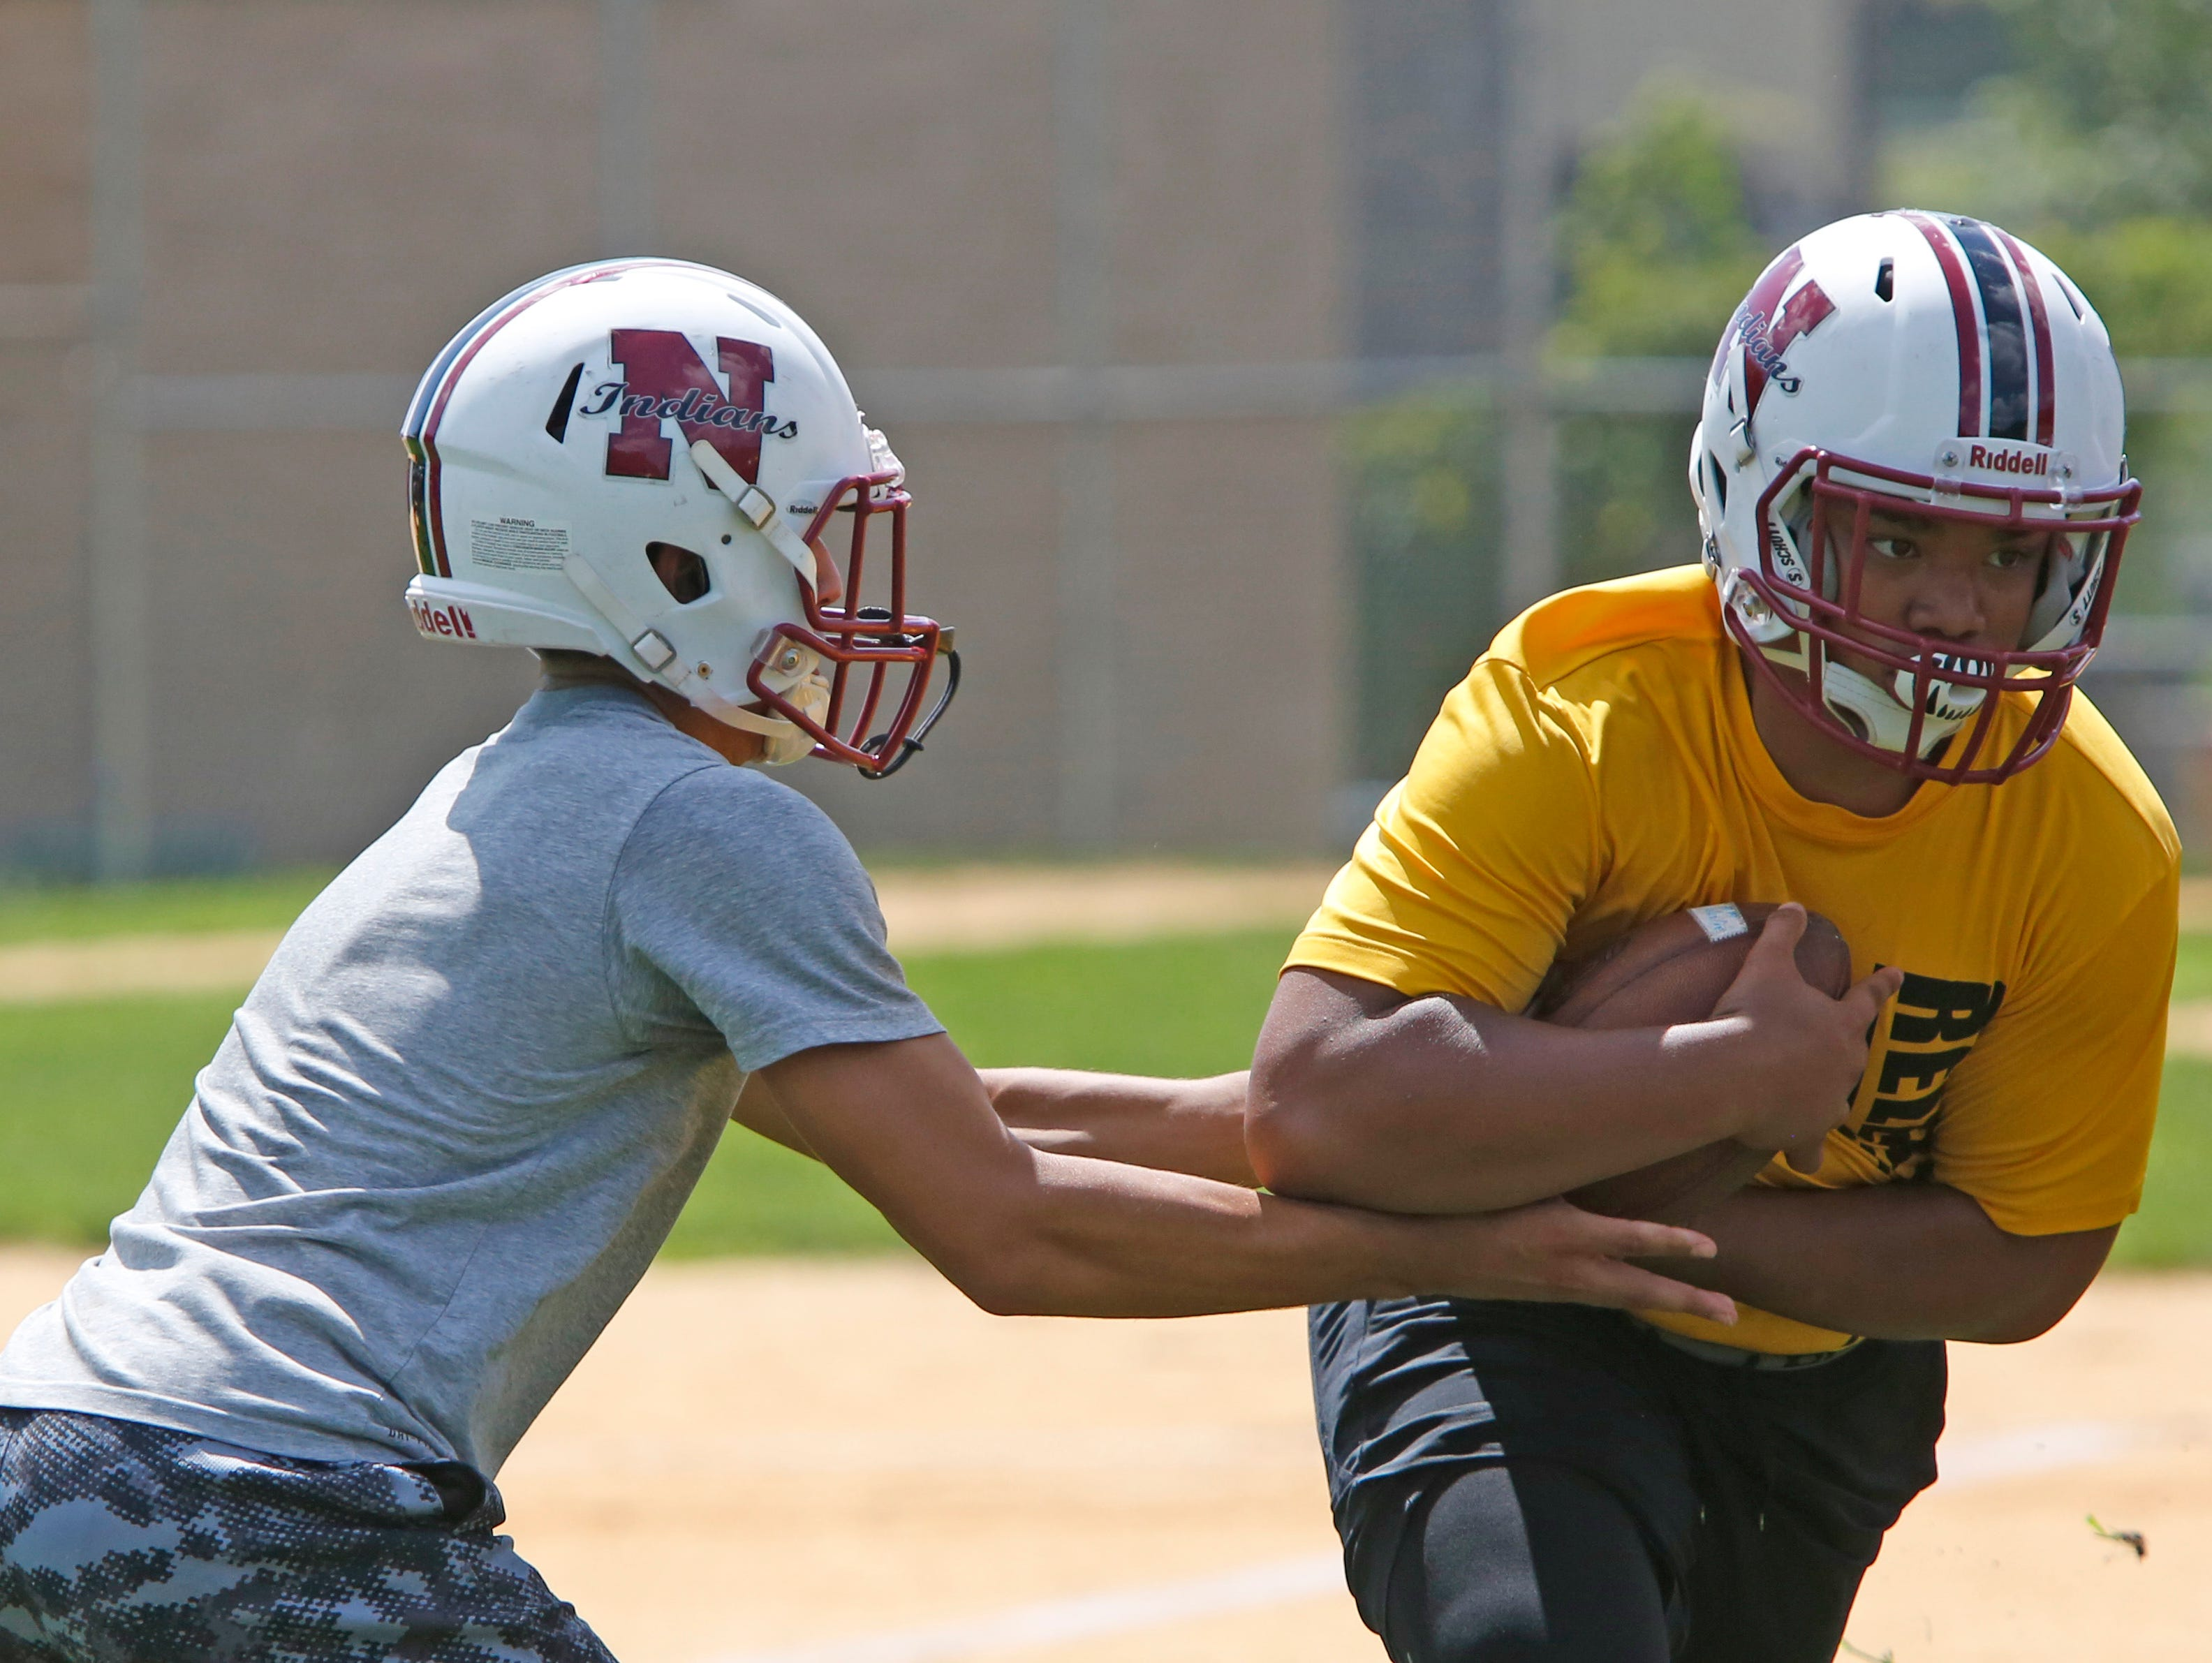 Nyack High School players work on drills during the first day of football practice Aug. 15, 2016 at Nyack Middle School.